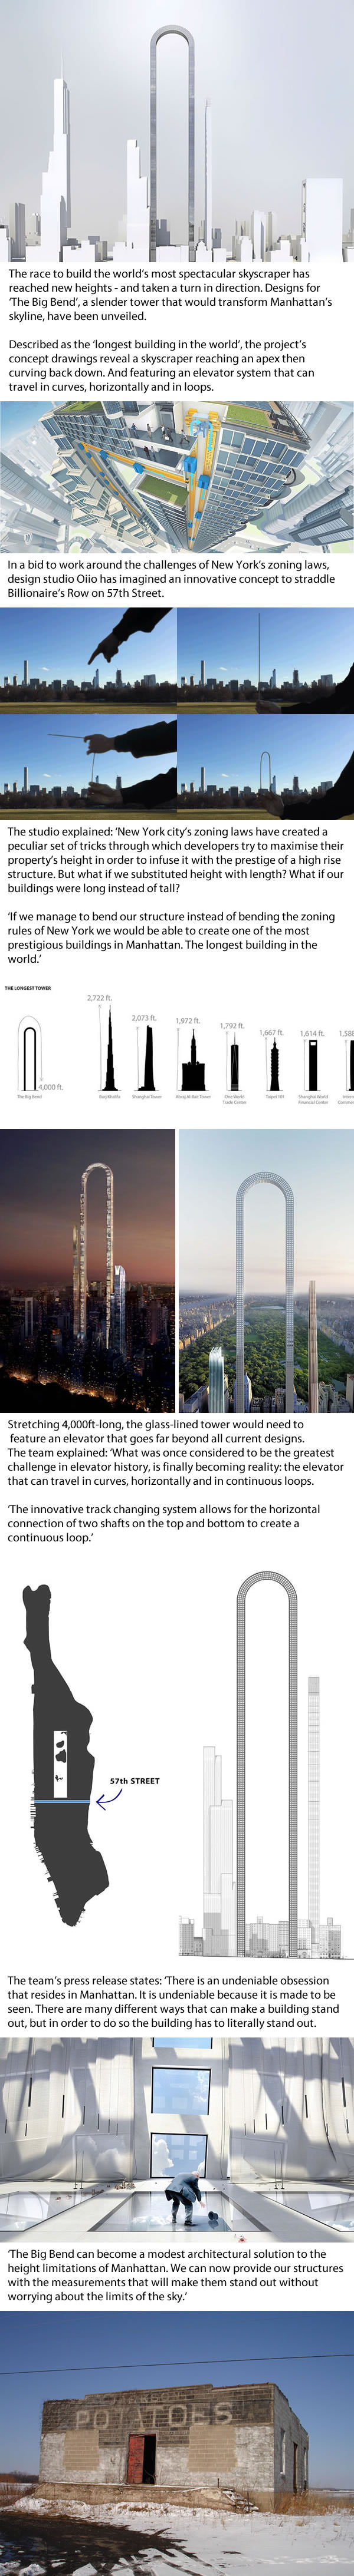 upside down u shaped skyscraper concept for new york